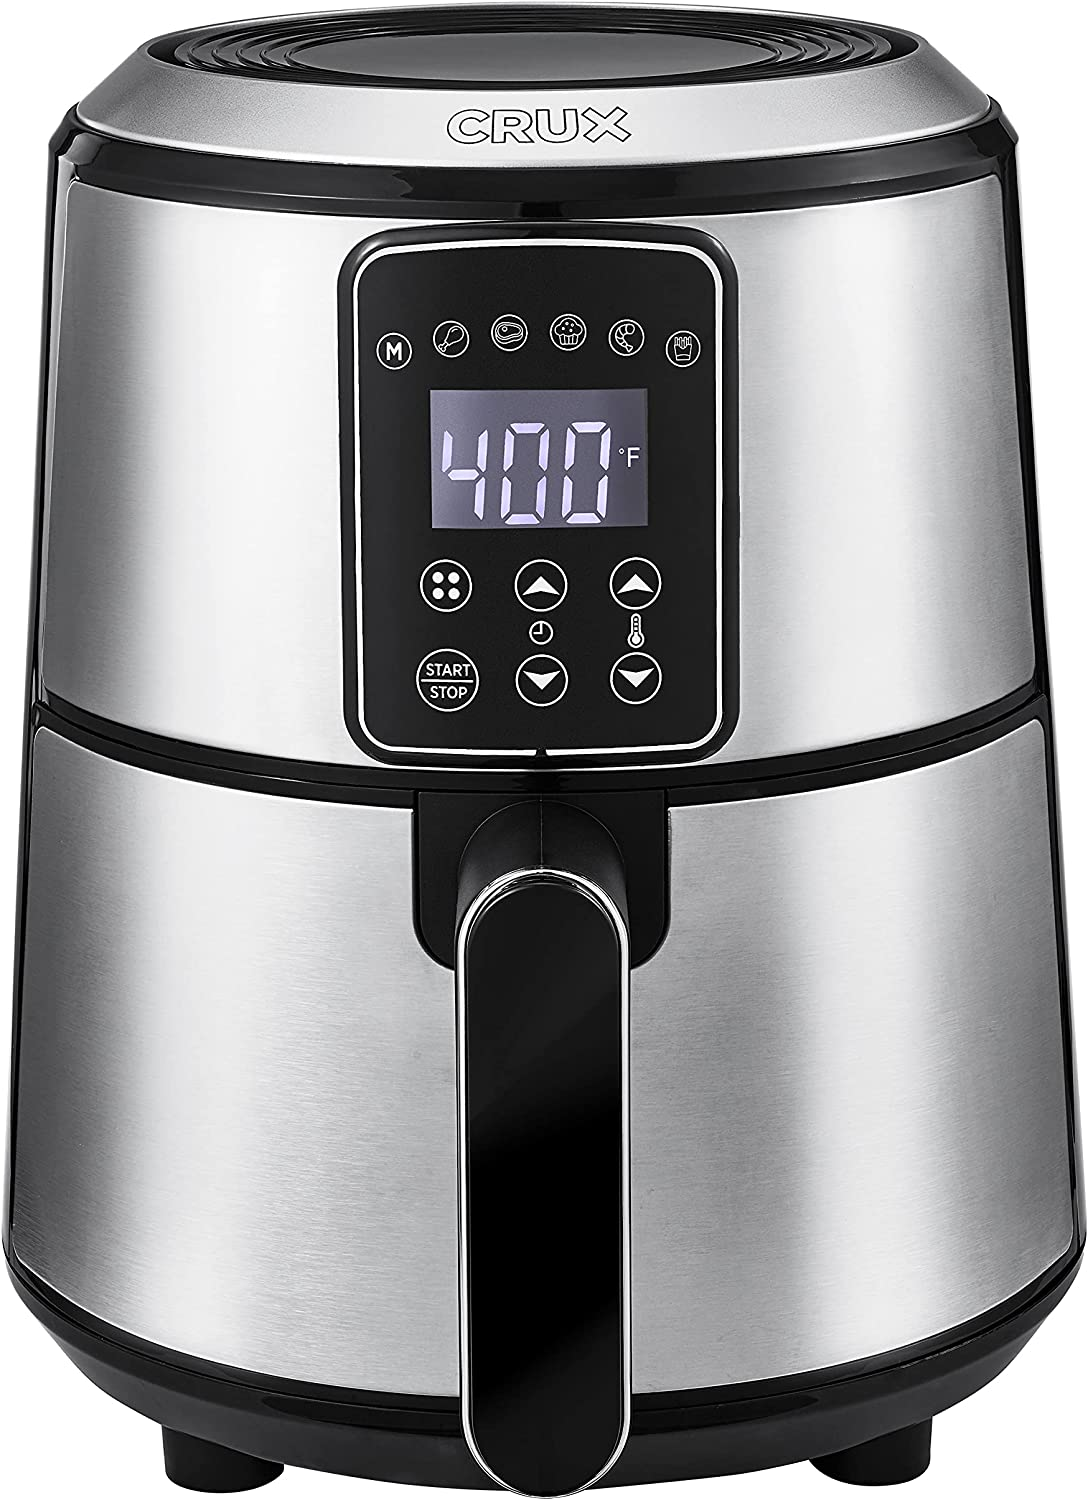 Crux 3QT Free Shipping New Digital Air Fryer Pre-Heat Fast Frying OFFicial store Faster No-Oil